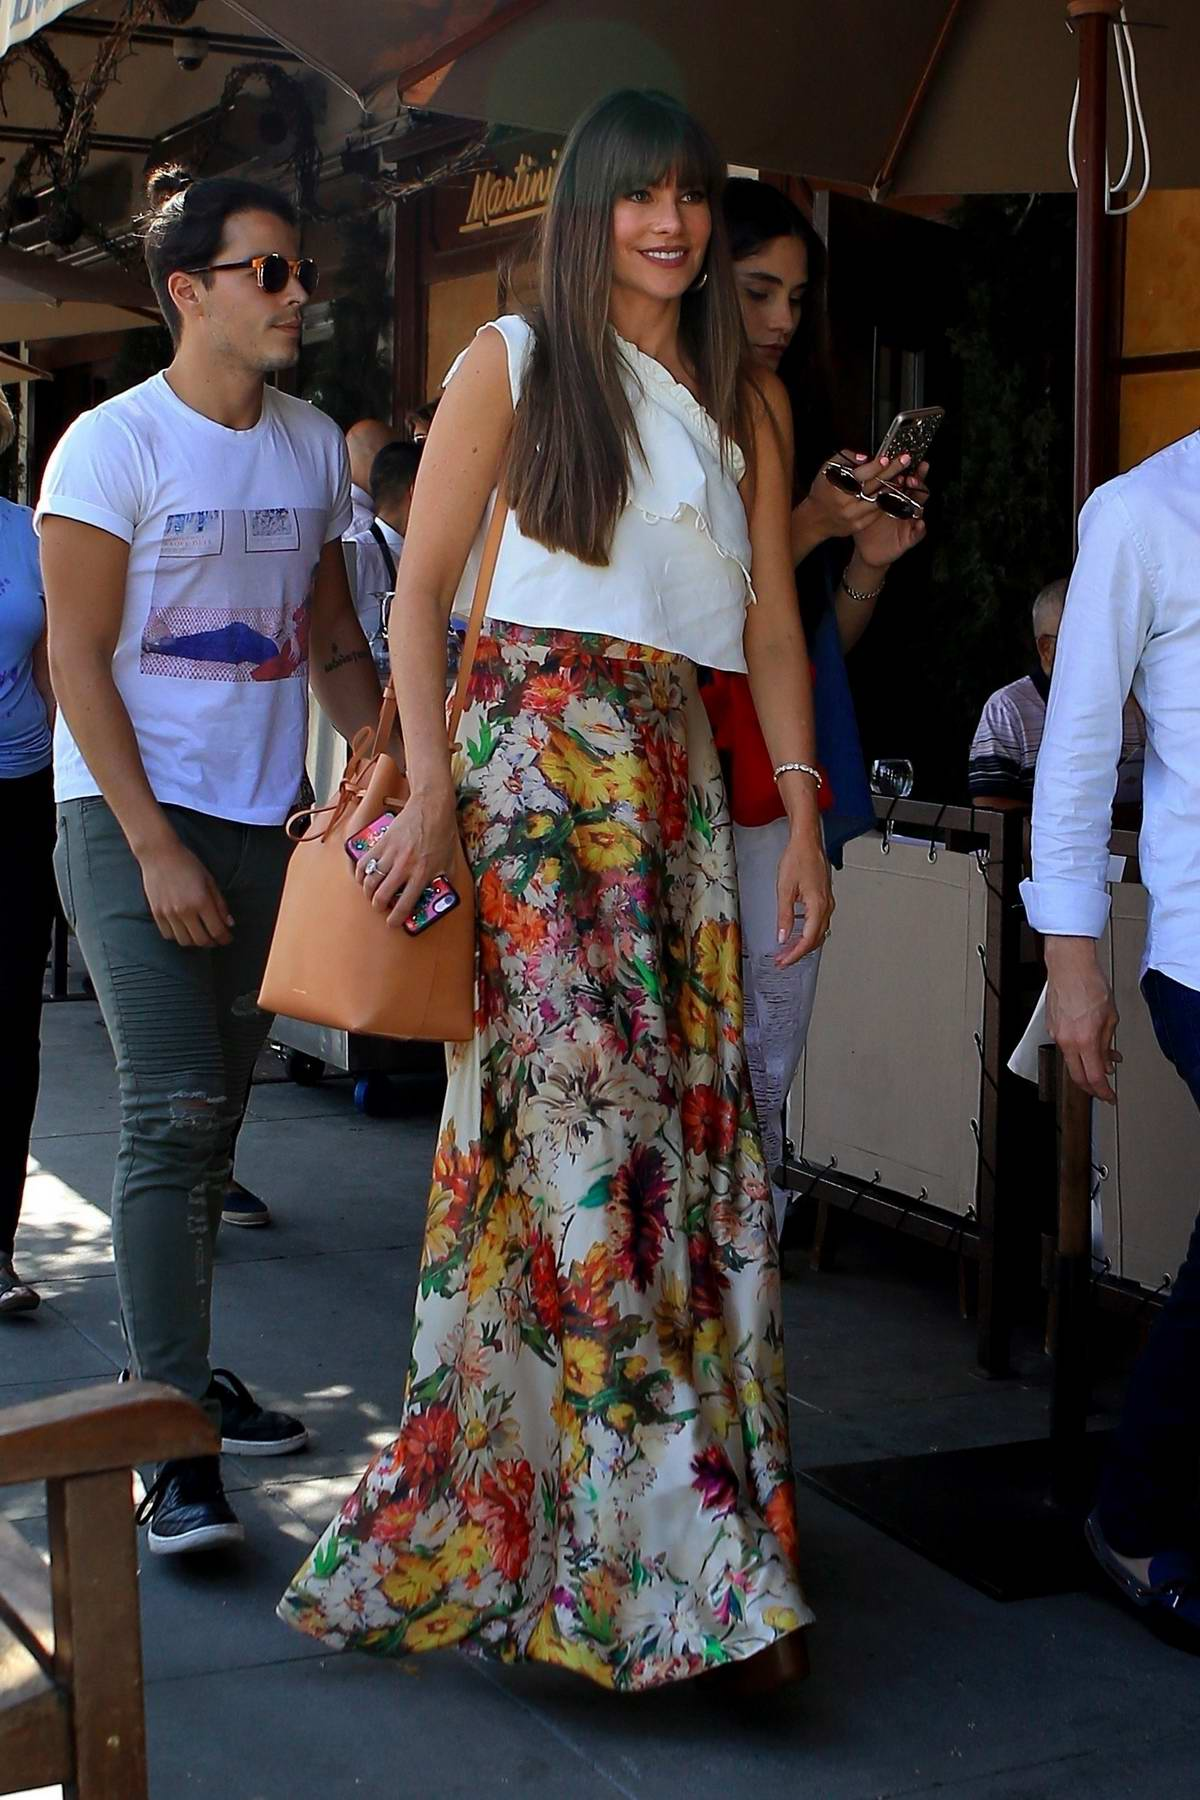 Sofia Vergara has lunch with Friends at Il Pastaio in Beverly Hills, California